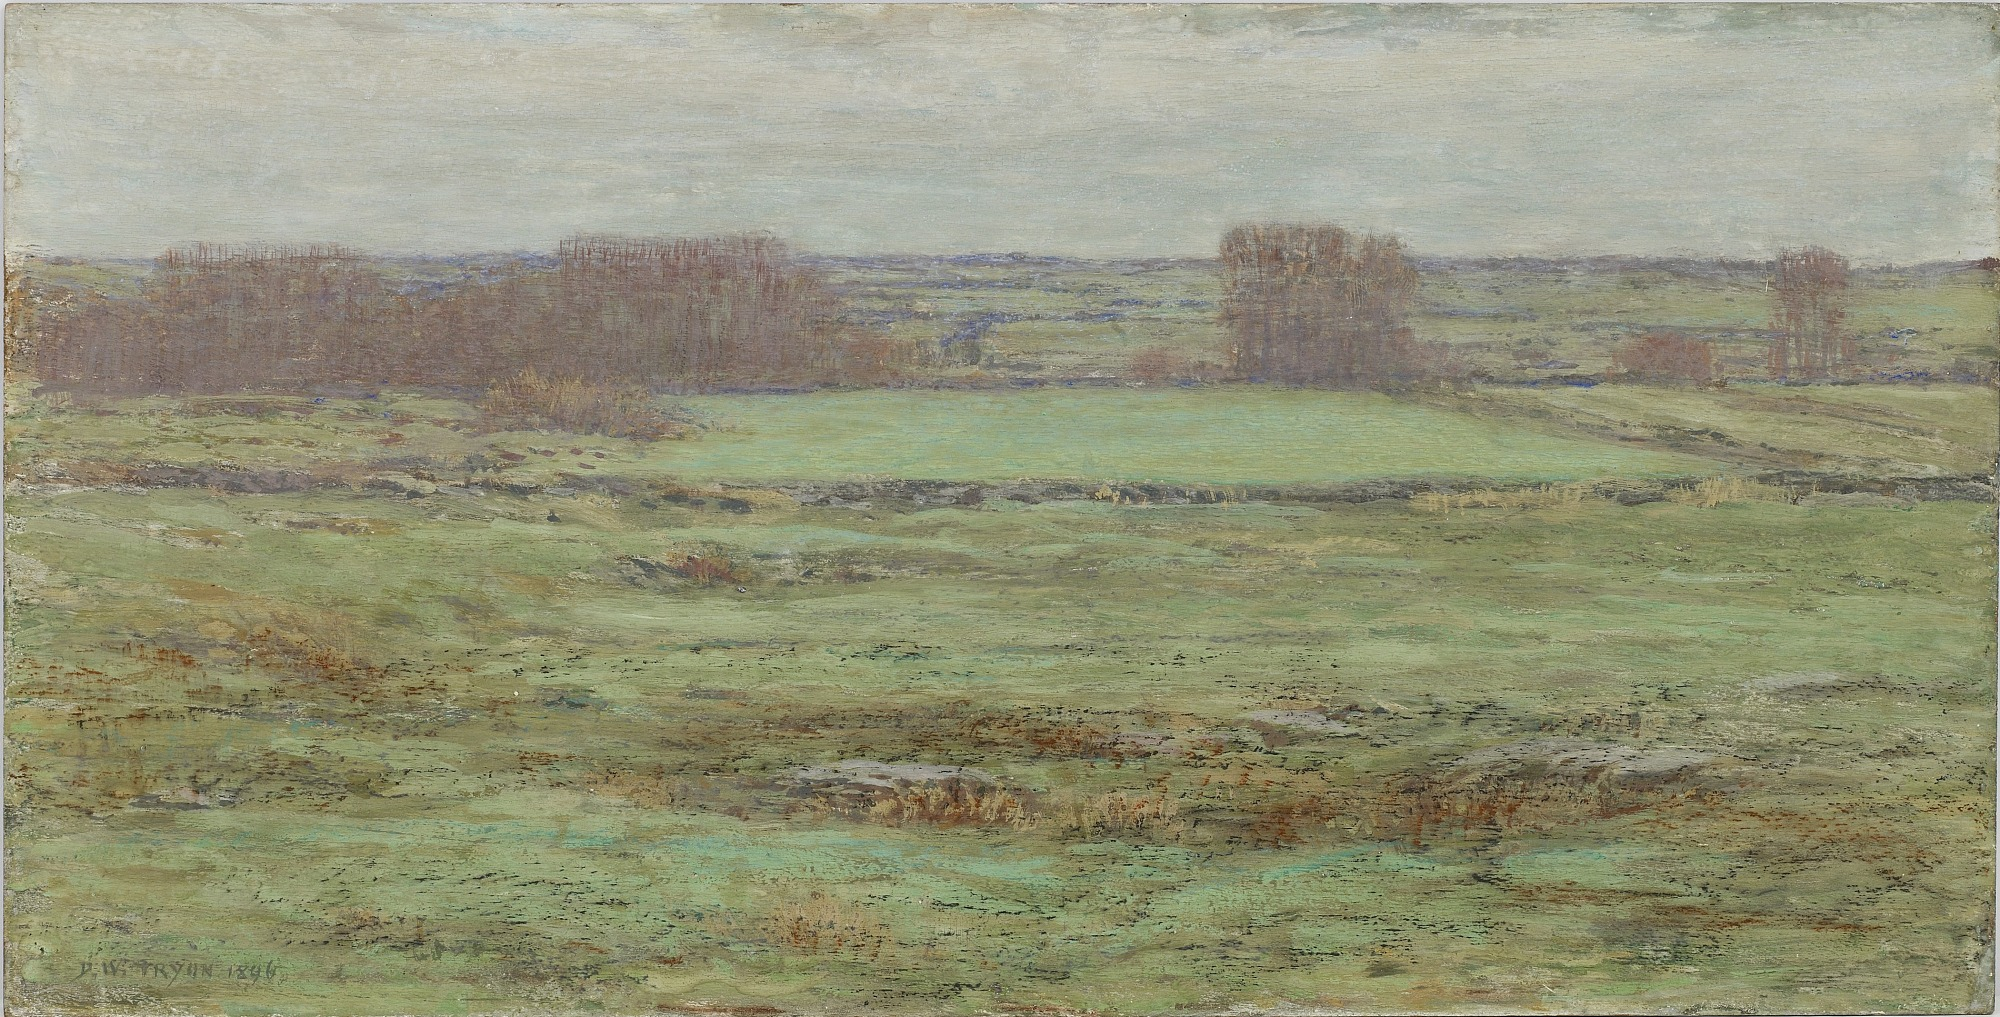 Pasture Lands: Early Spring